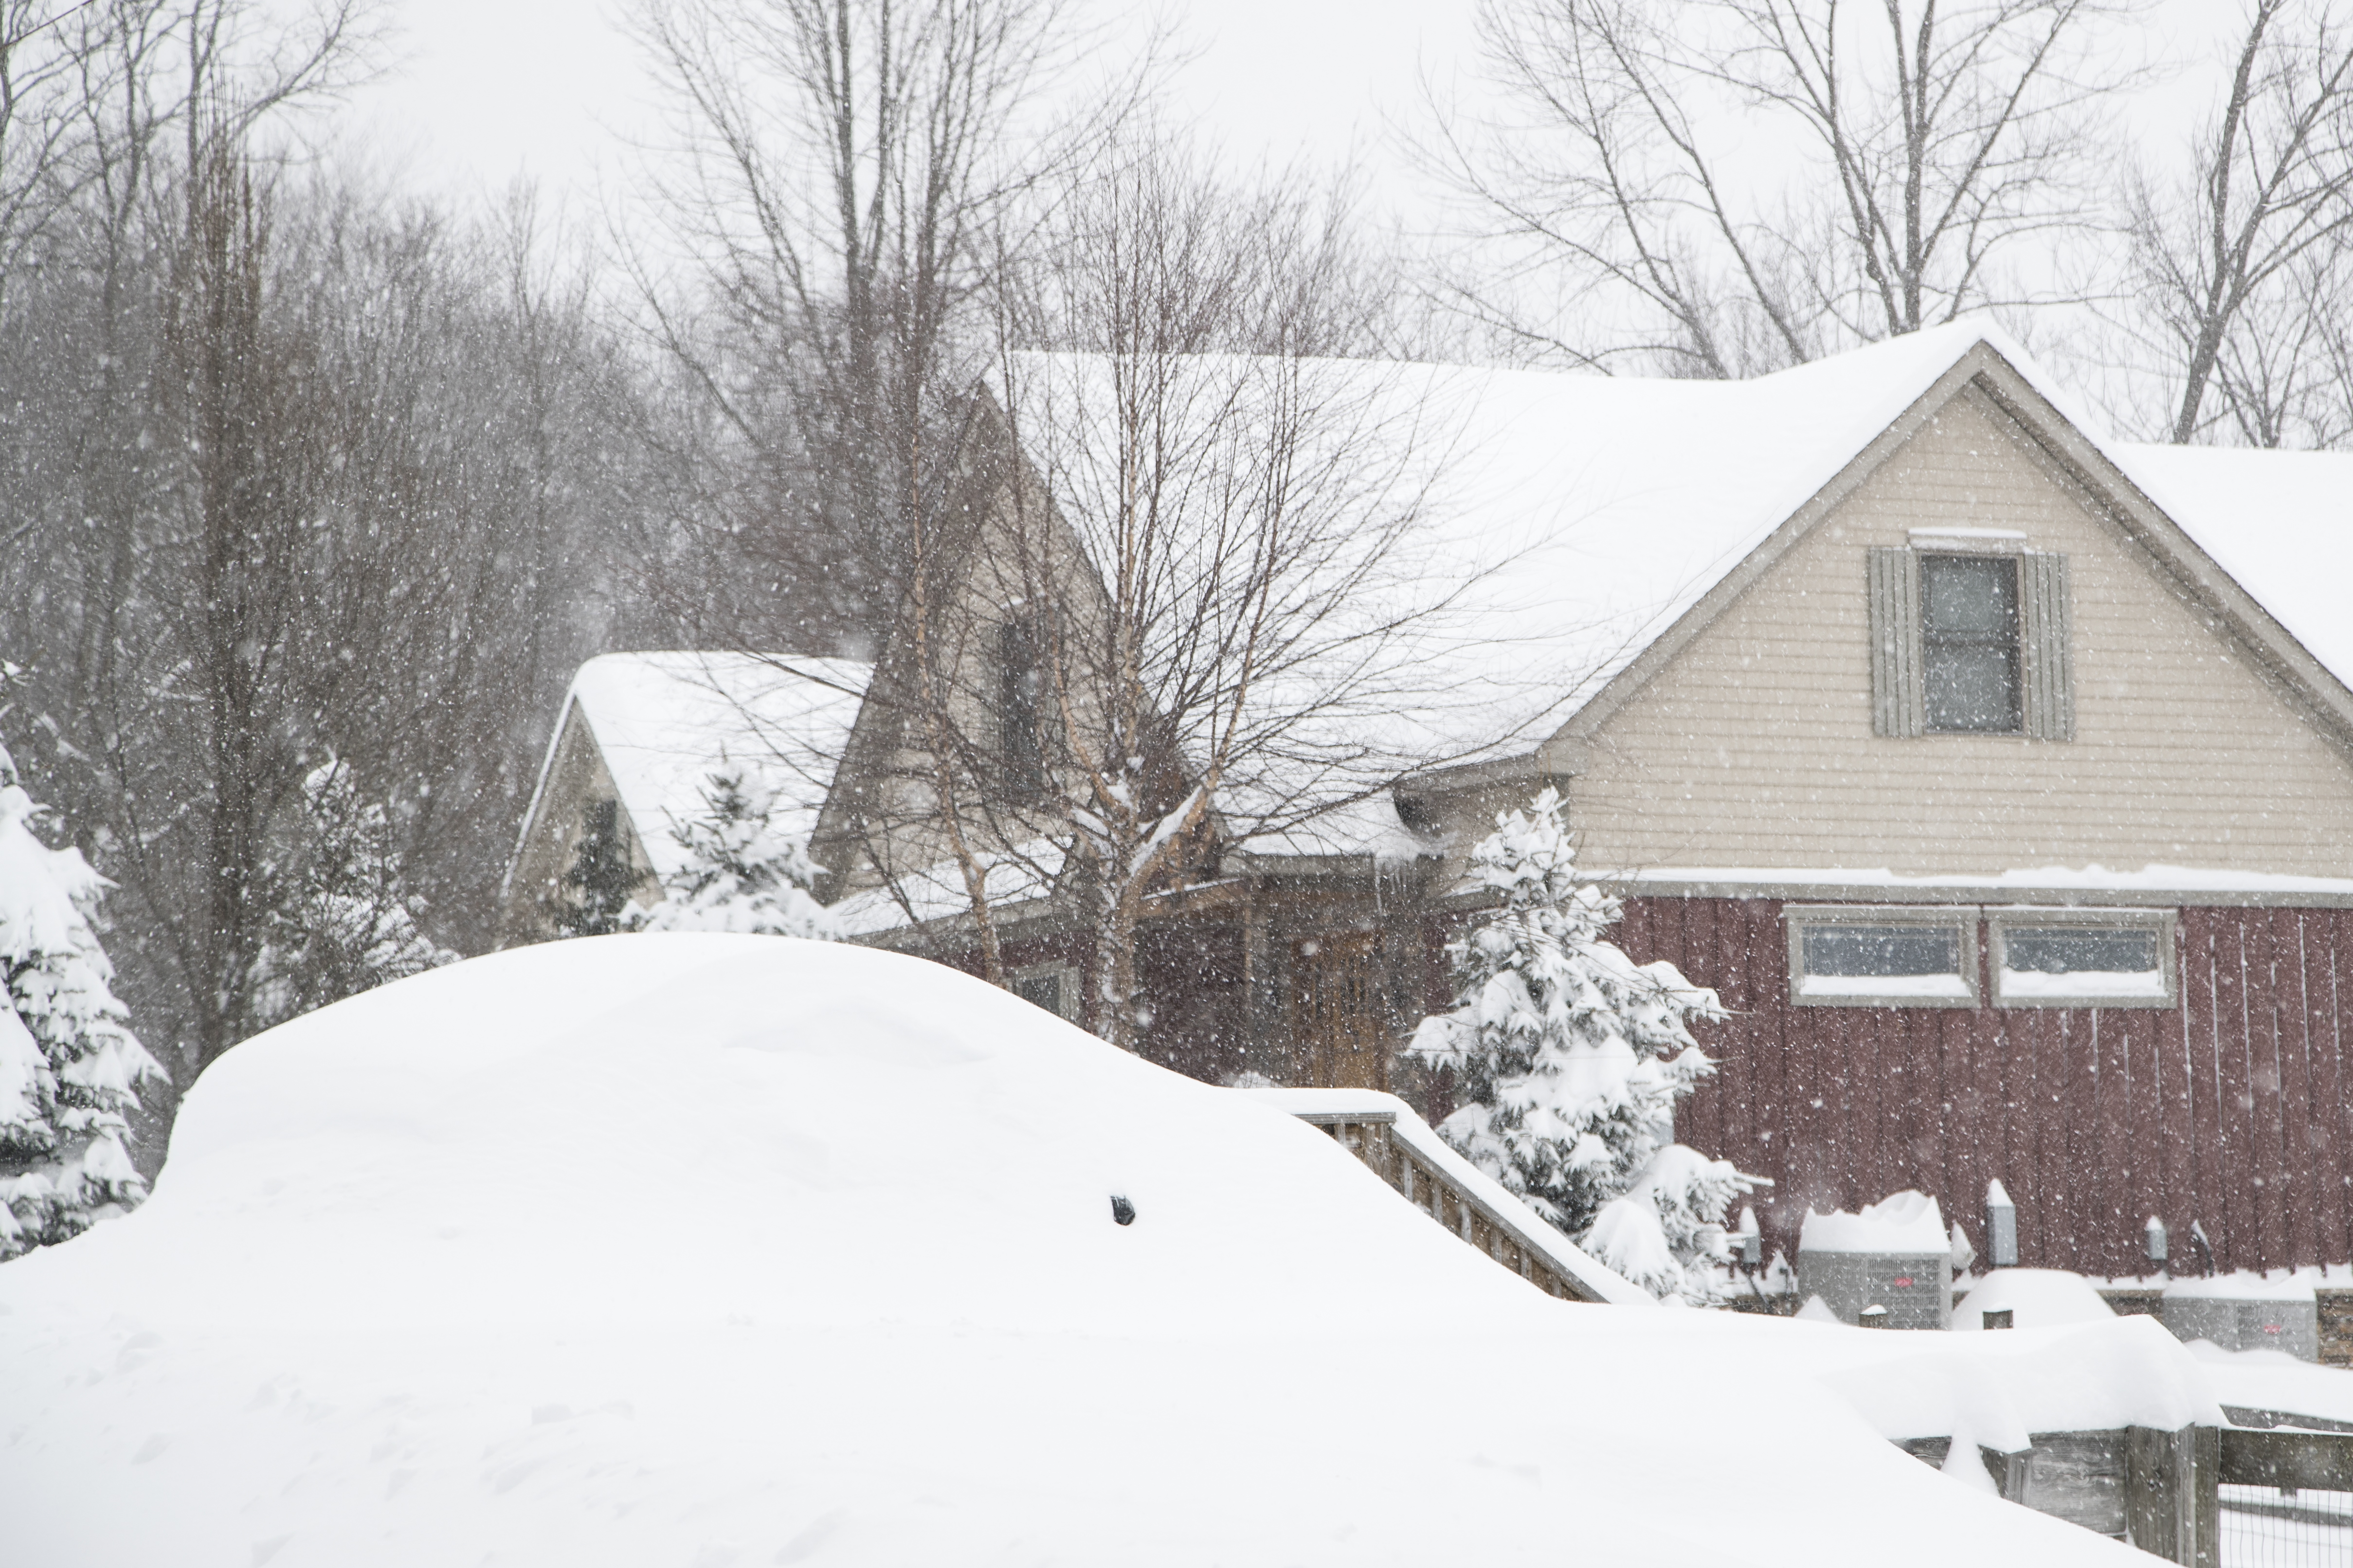 Snow covers a car (foreground) at a home in Union Dale, Pennsylvania following heavy snowfall on March 14, 2017.